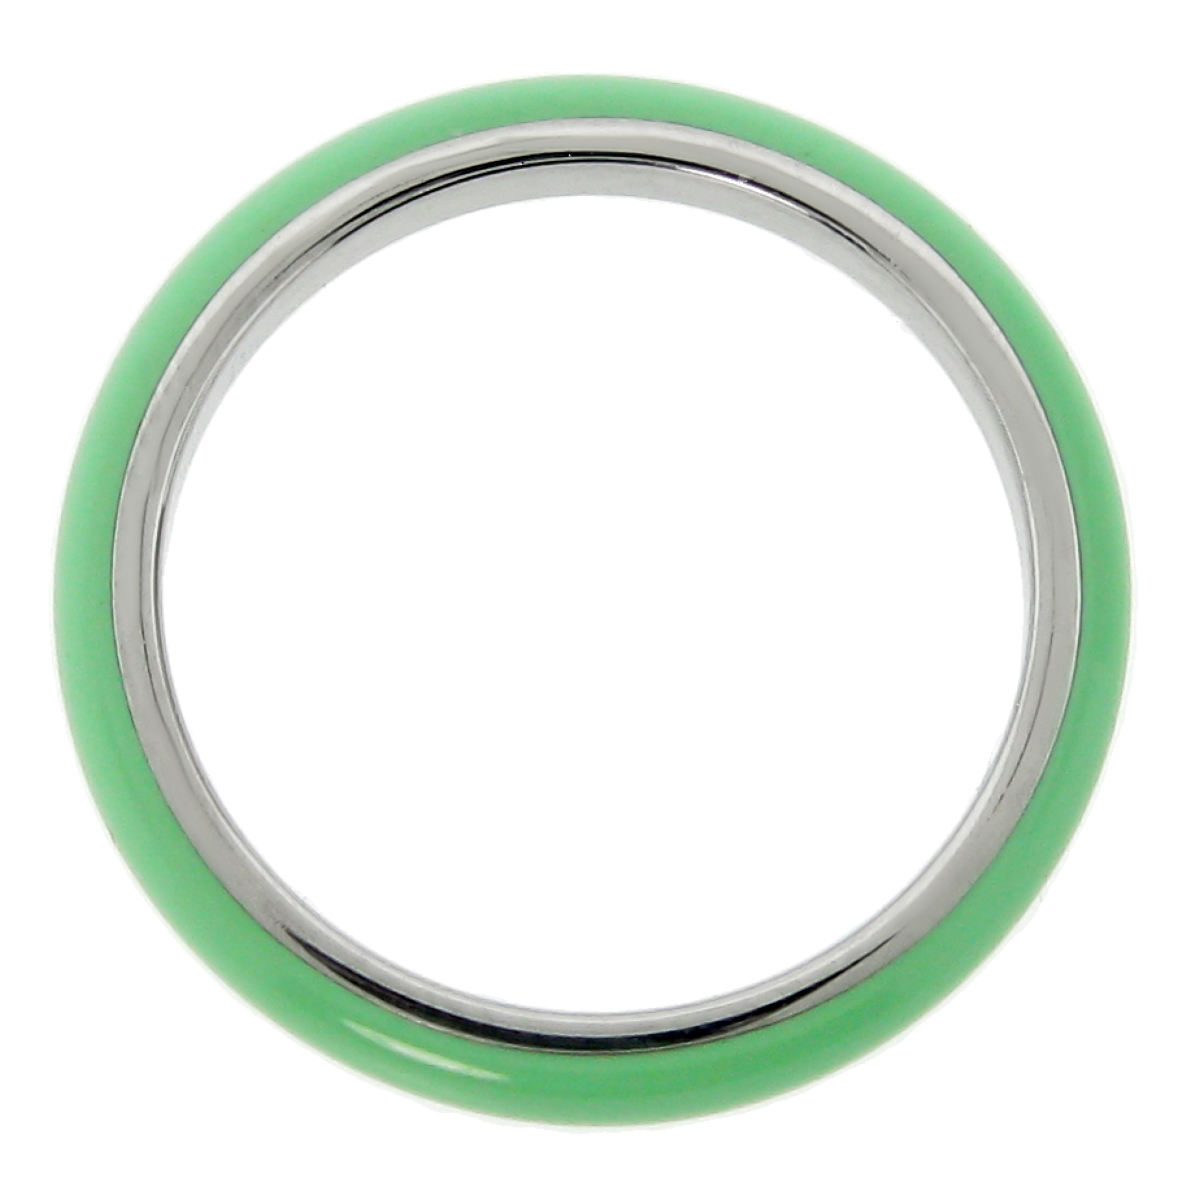 Metro Jewelry Stainless Steel Thin Ring with Green Enamel